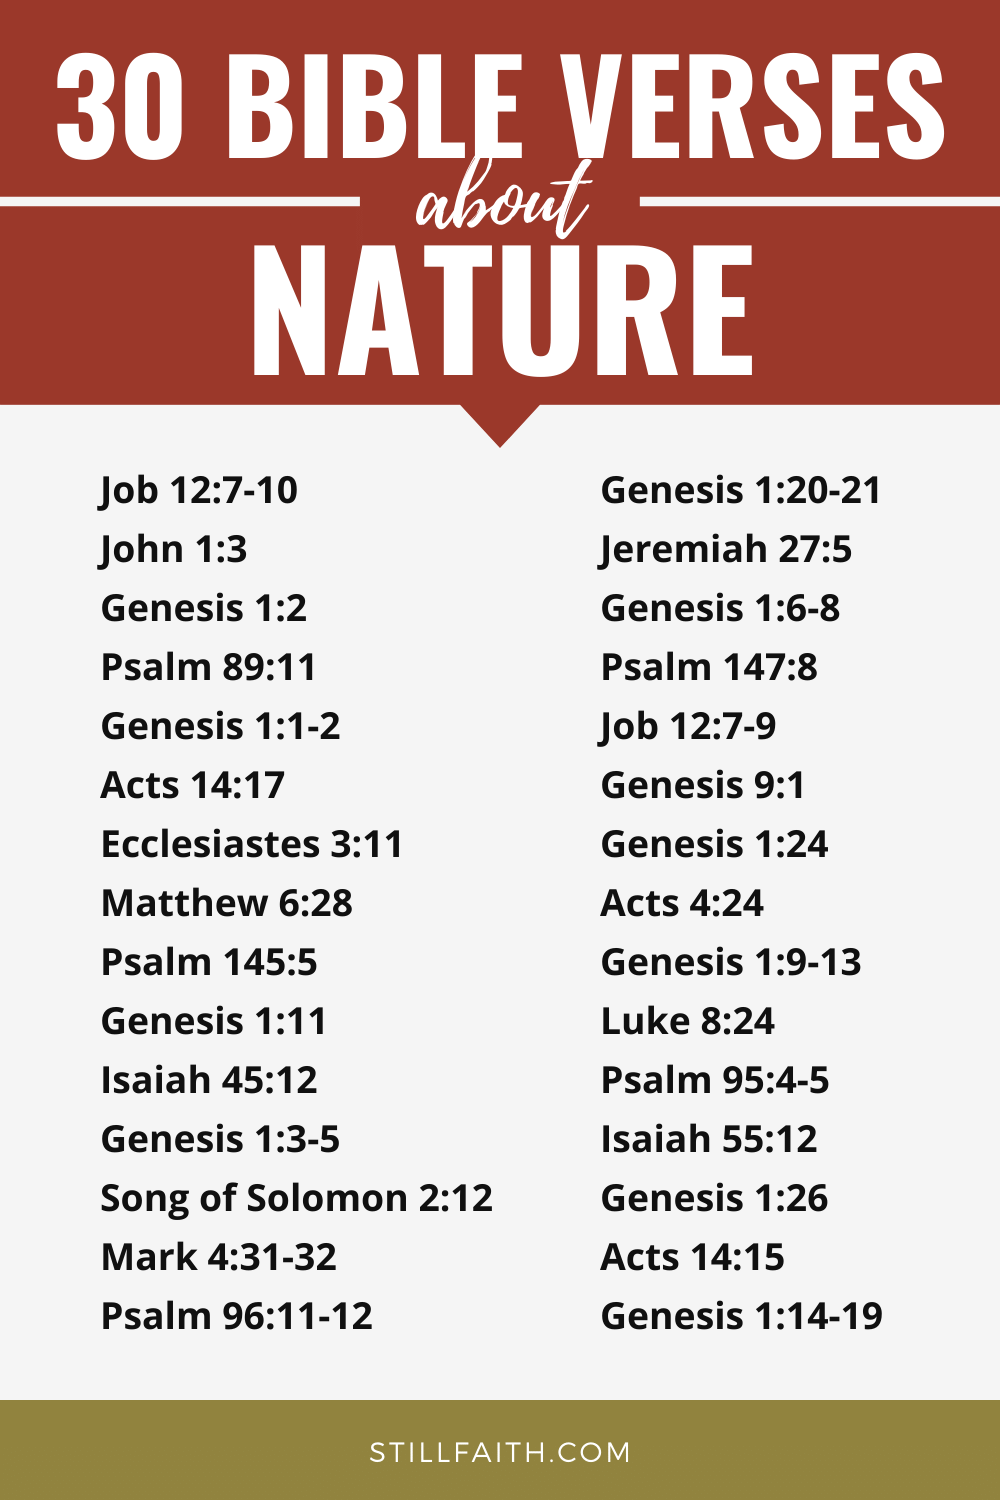 195 Bible Verses about Nature